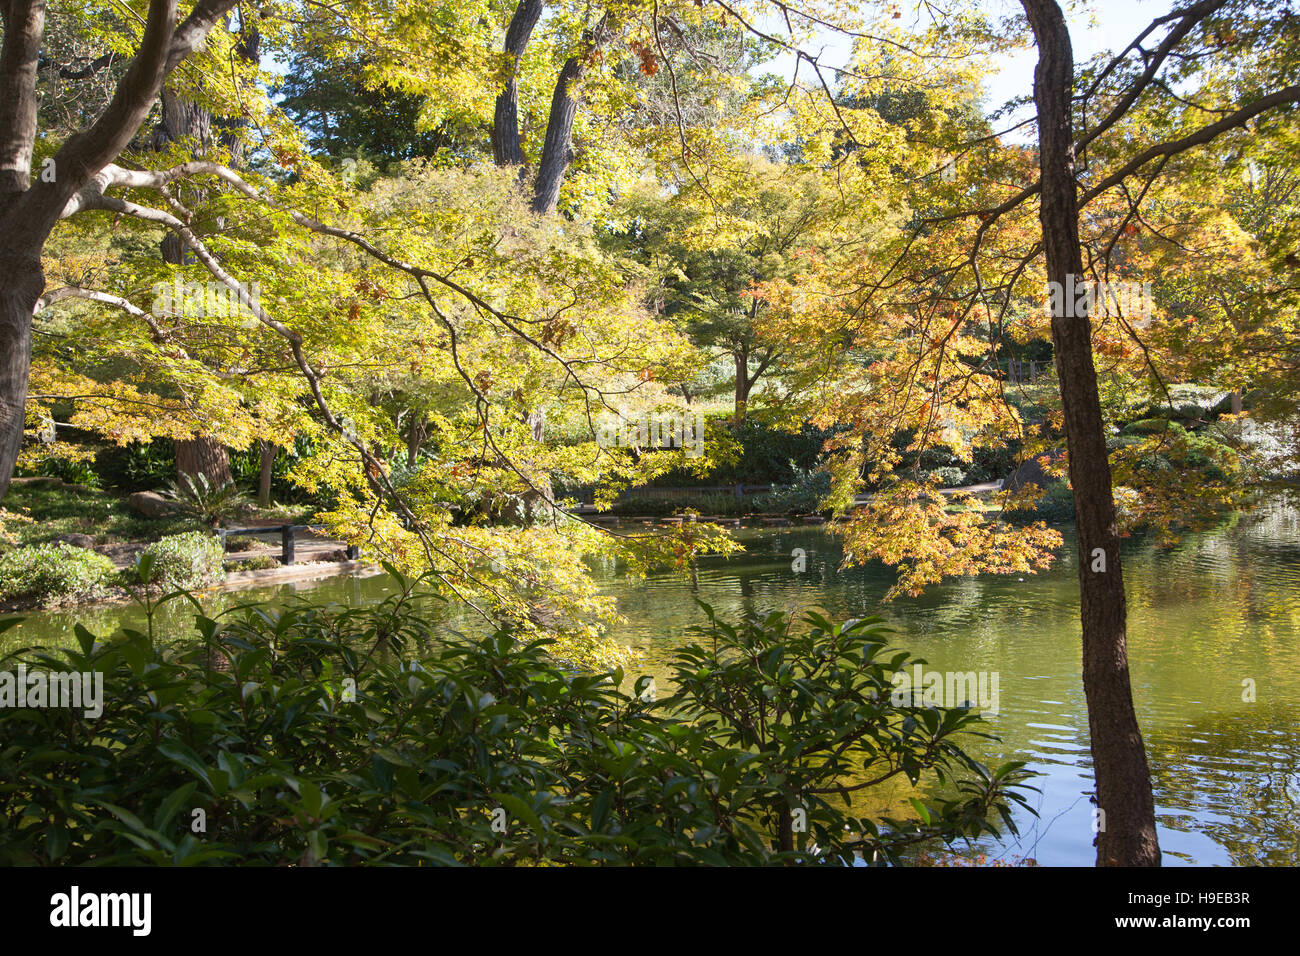 Japanese Garden, Dallas, TX   Stock Image